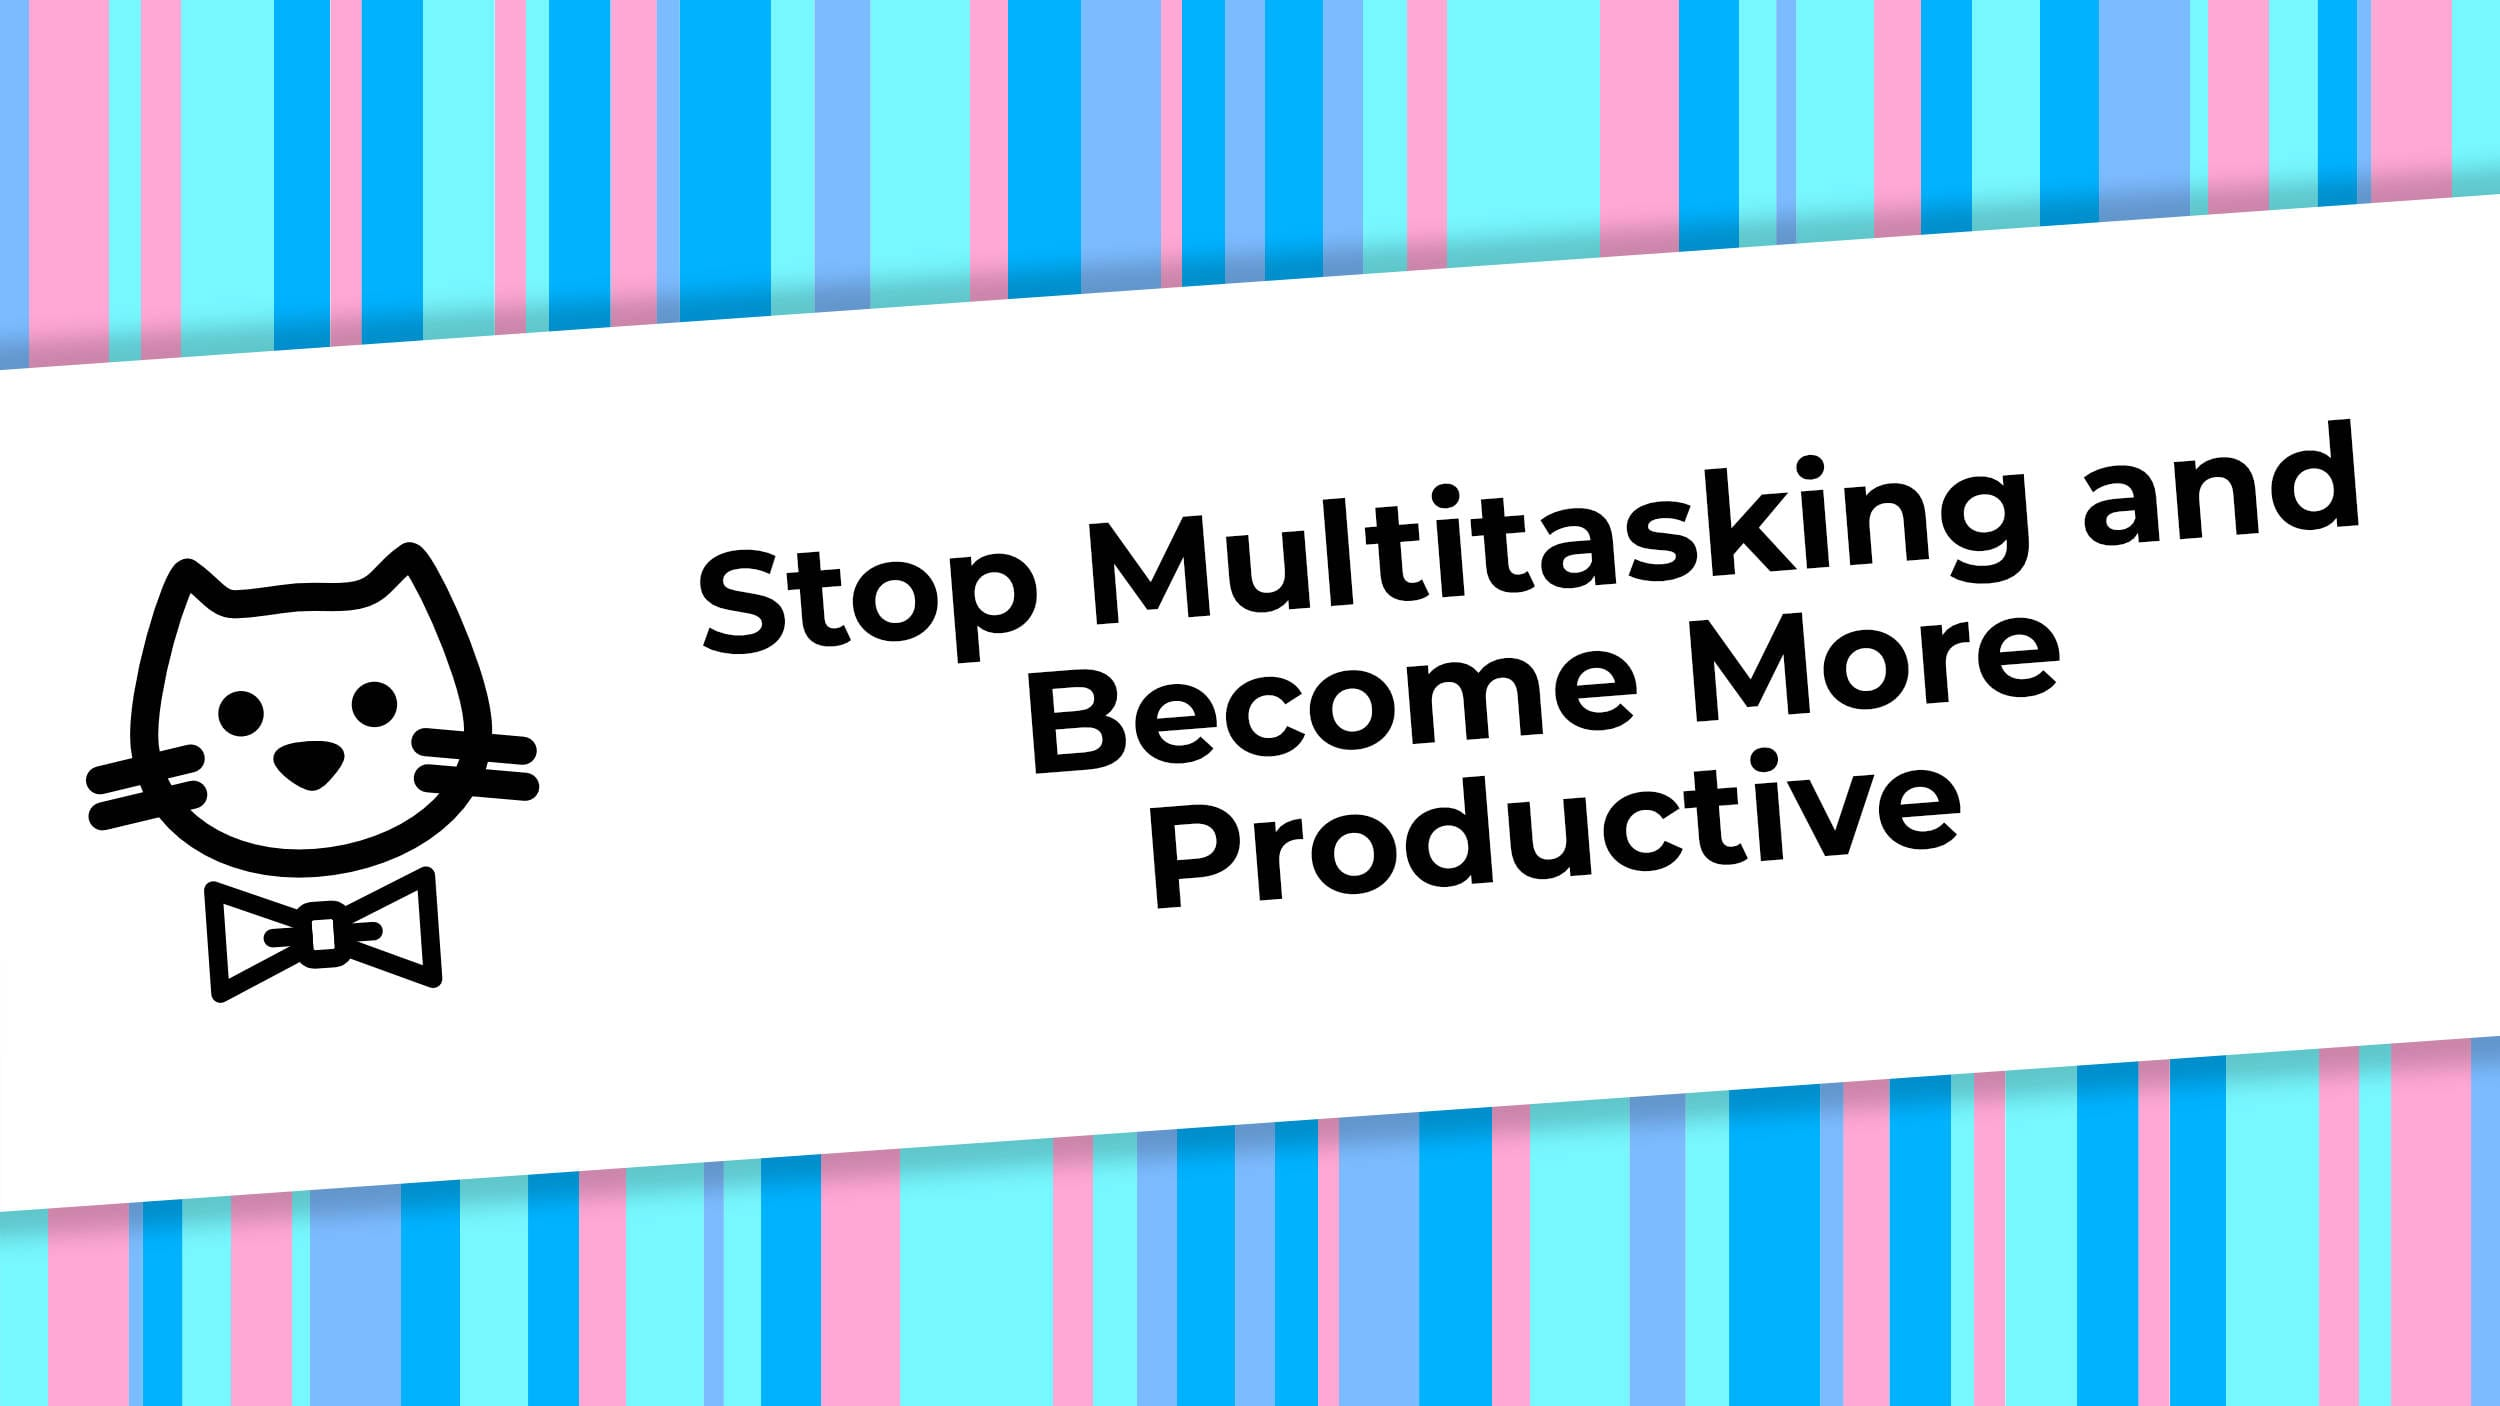 Stop Multitasking and Become More Productive.jpg